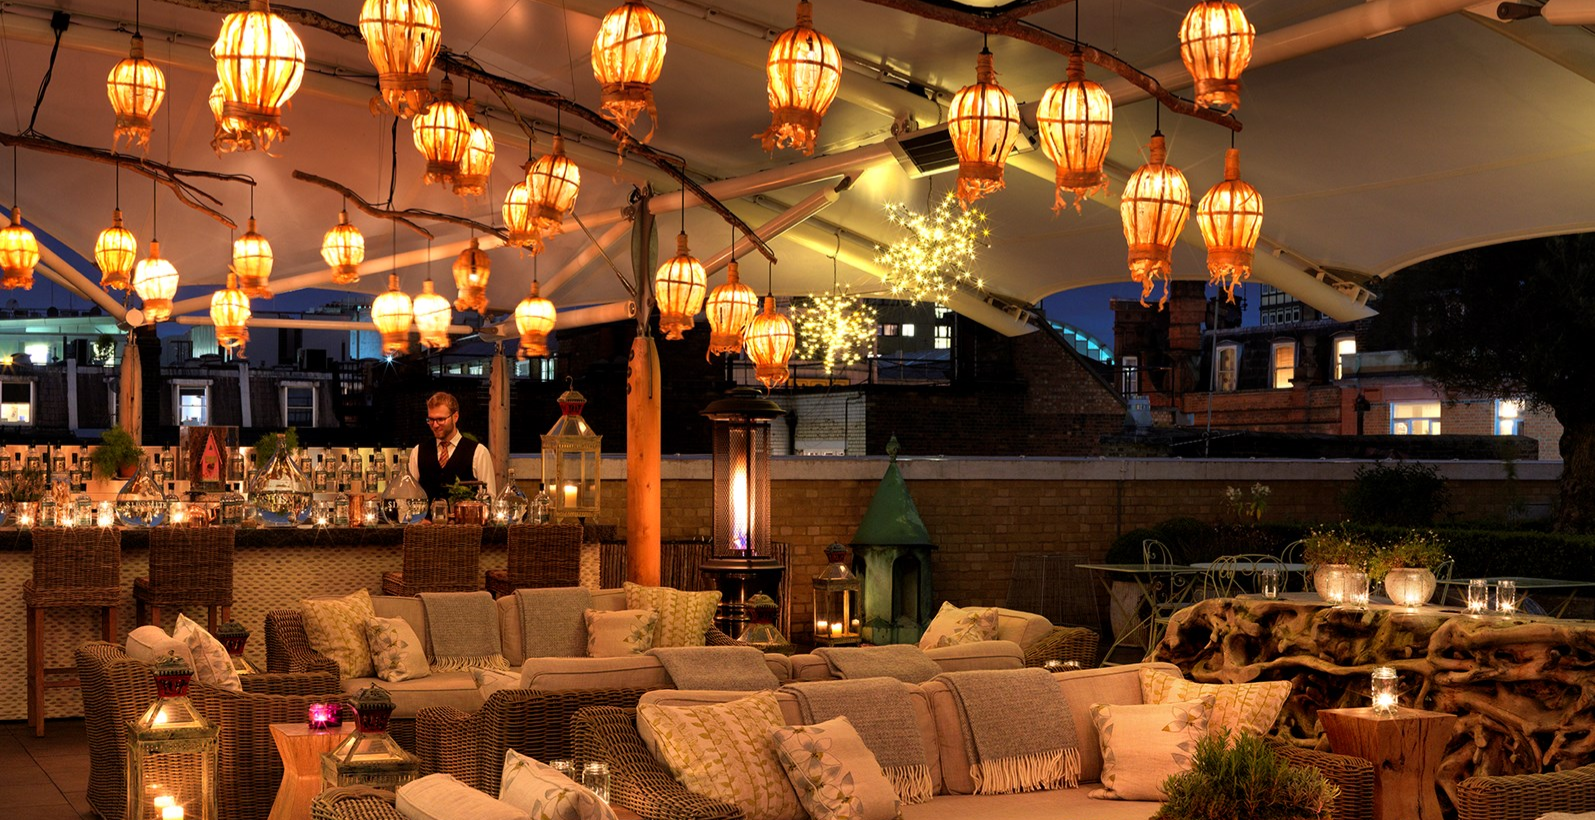 HAM YARD HOTEL - NEW YEAR'S EVE ON THE ROOF TERRACE